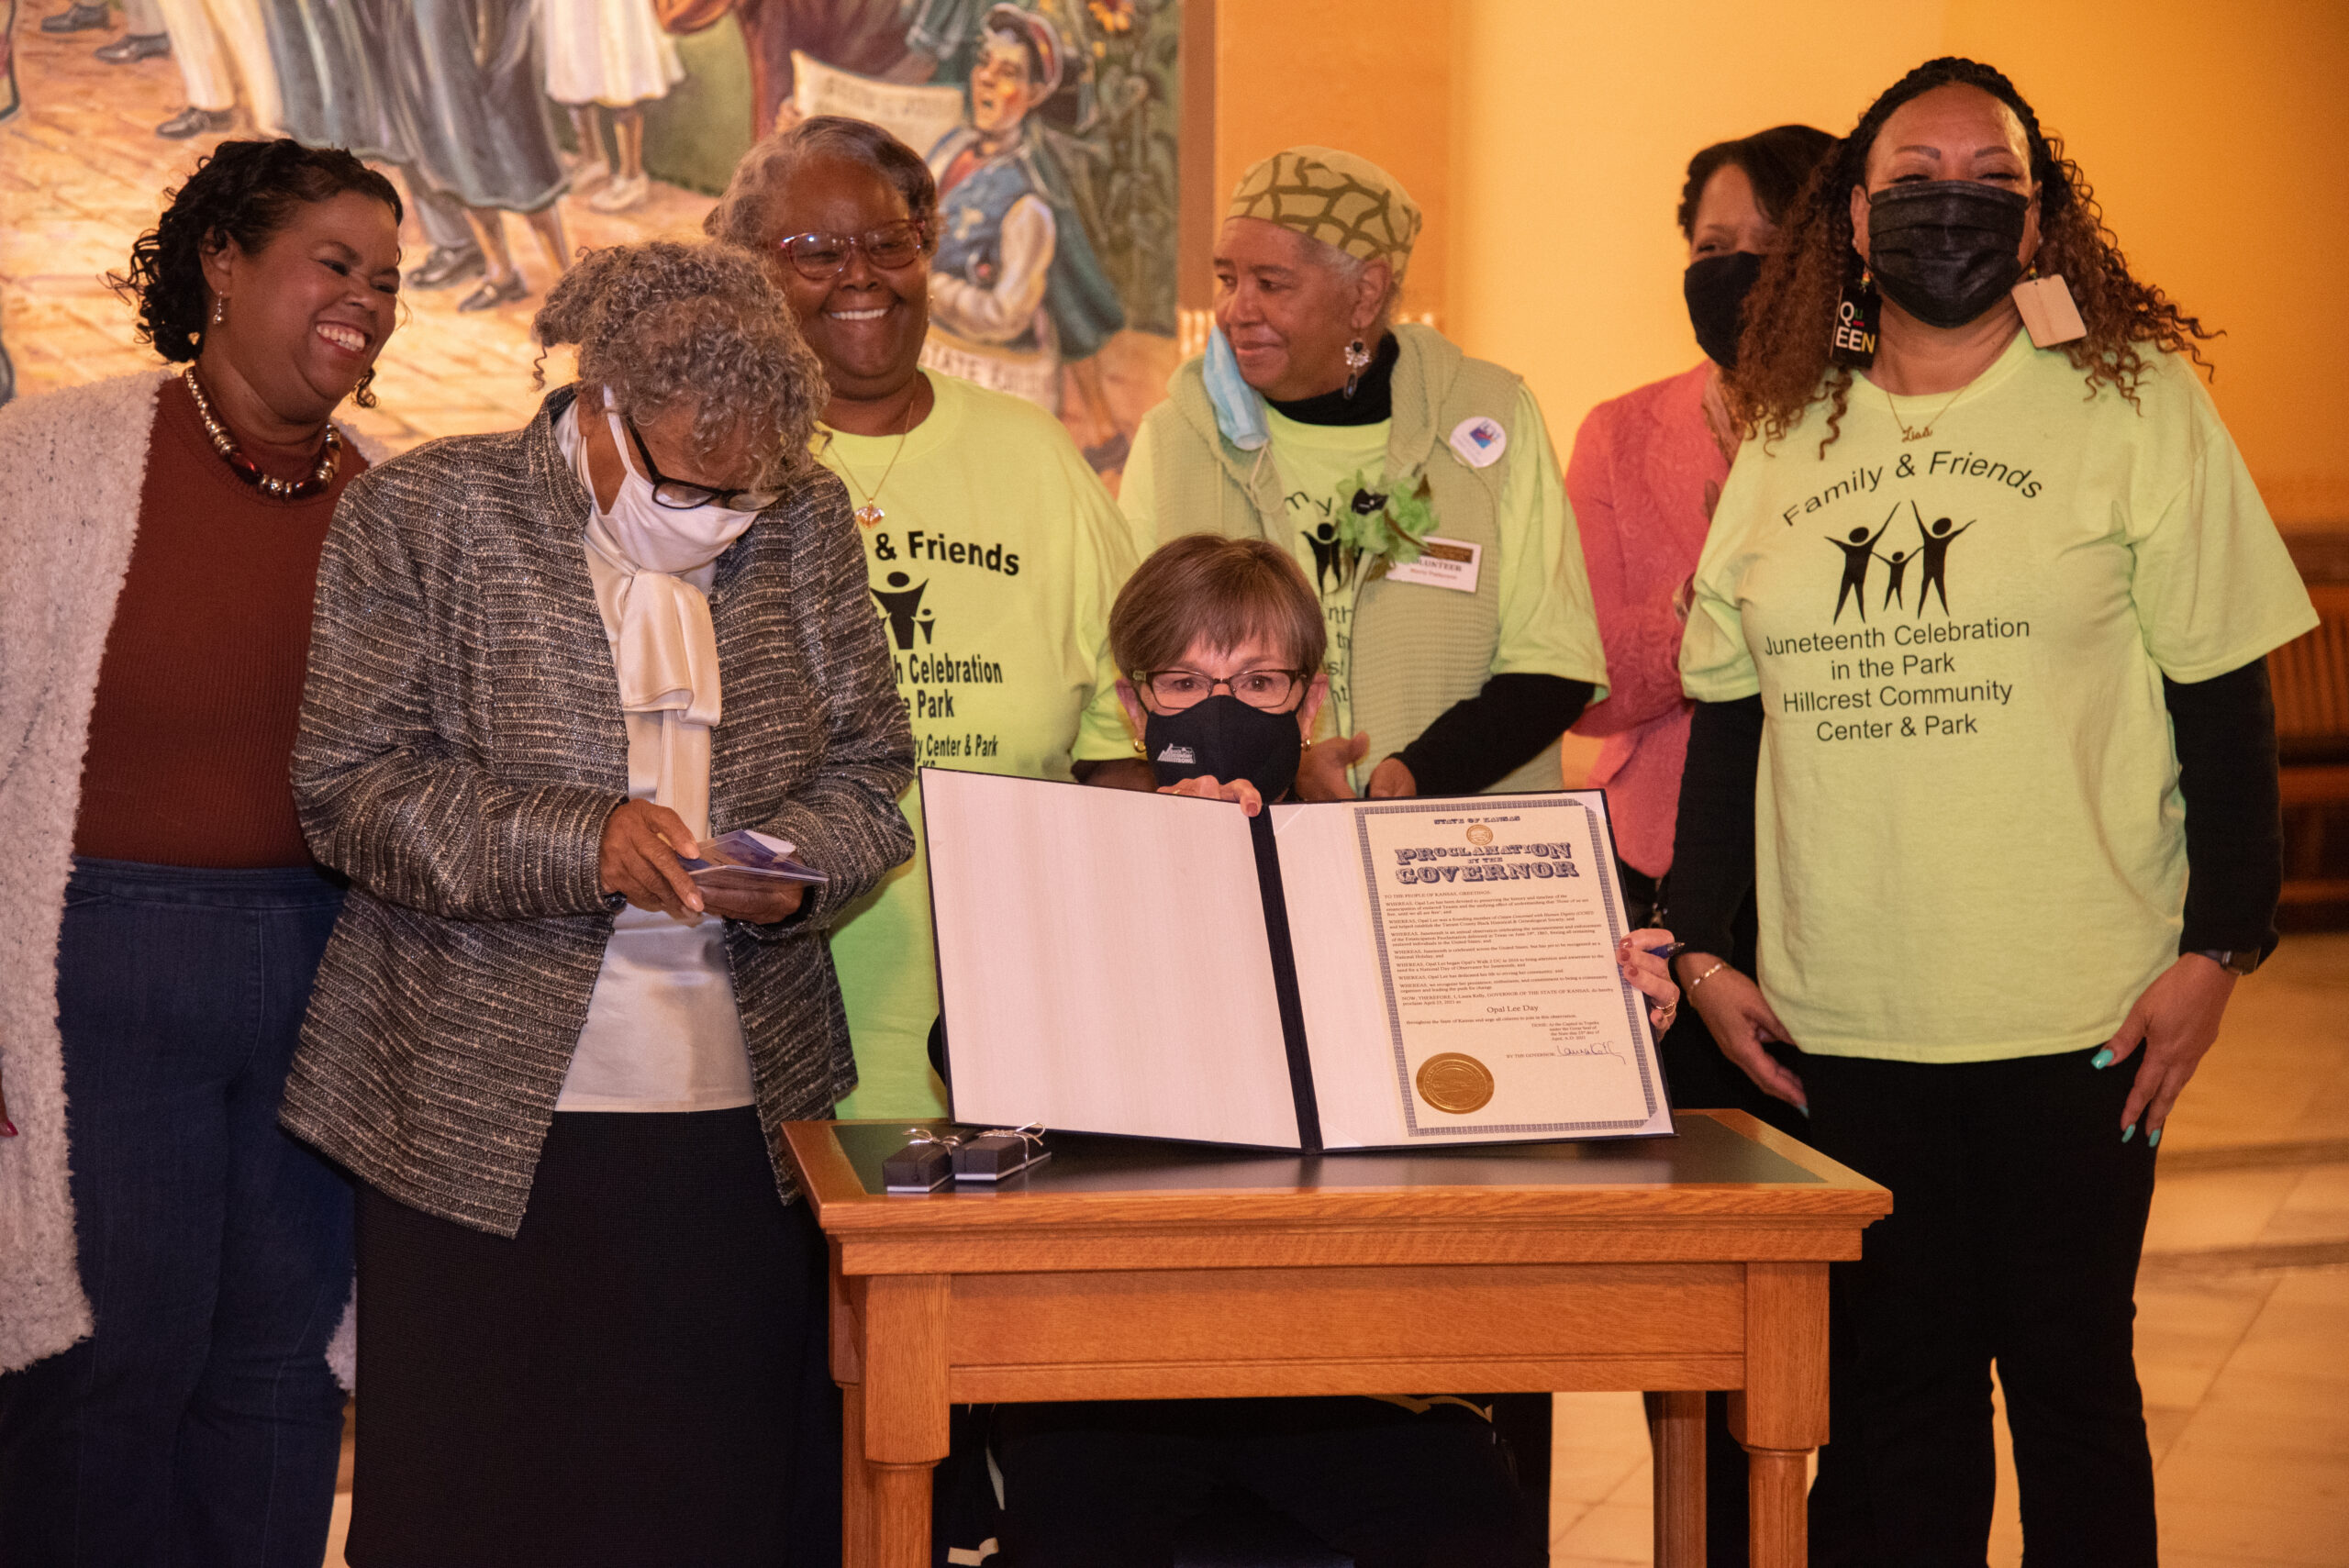 Kansas governor recognizes 'little lady in sneakers' advocating for national Juneteenth holiday